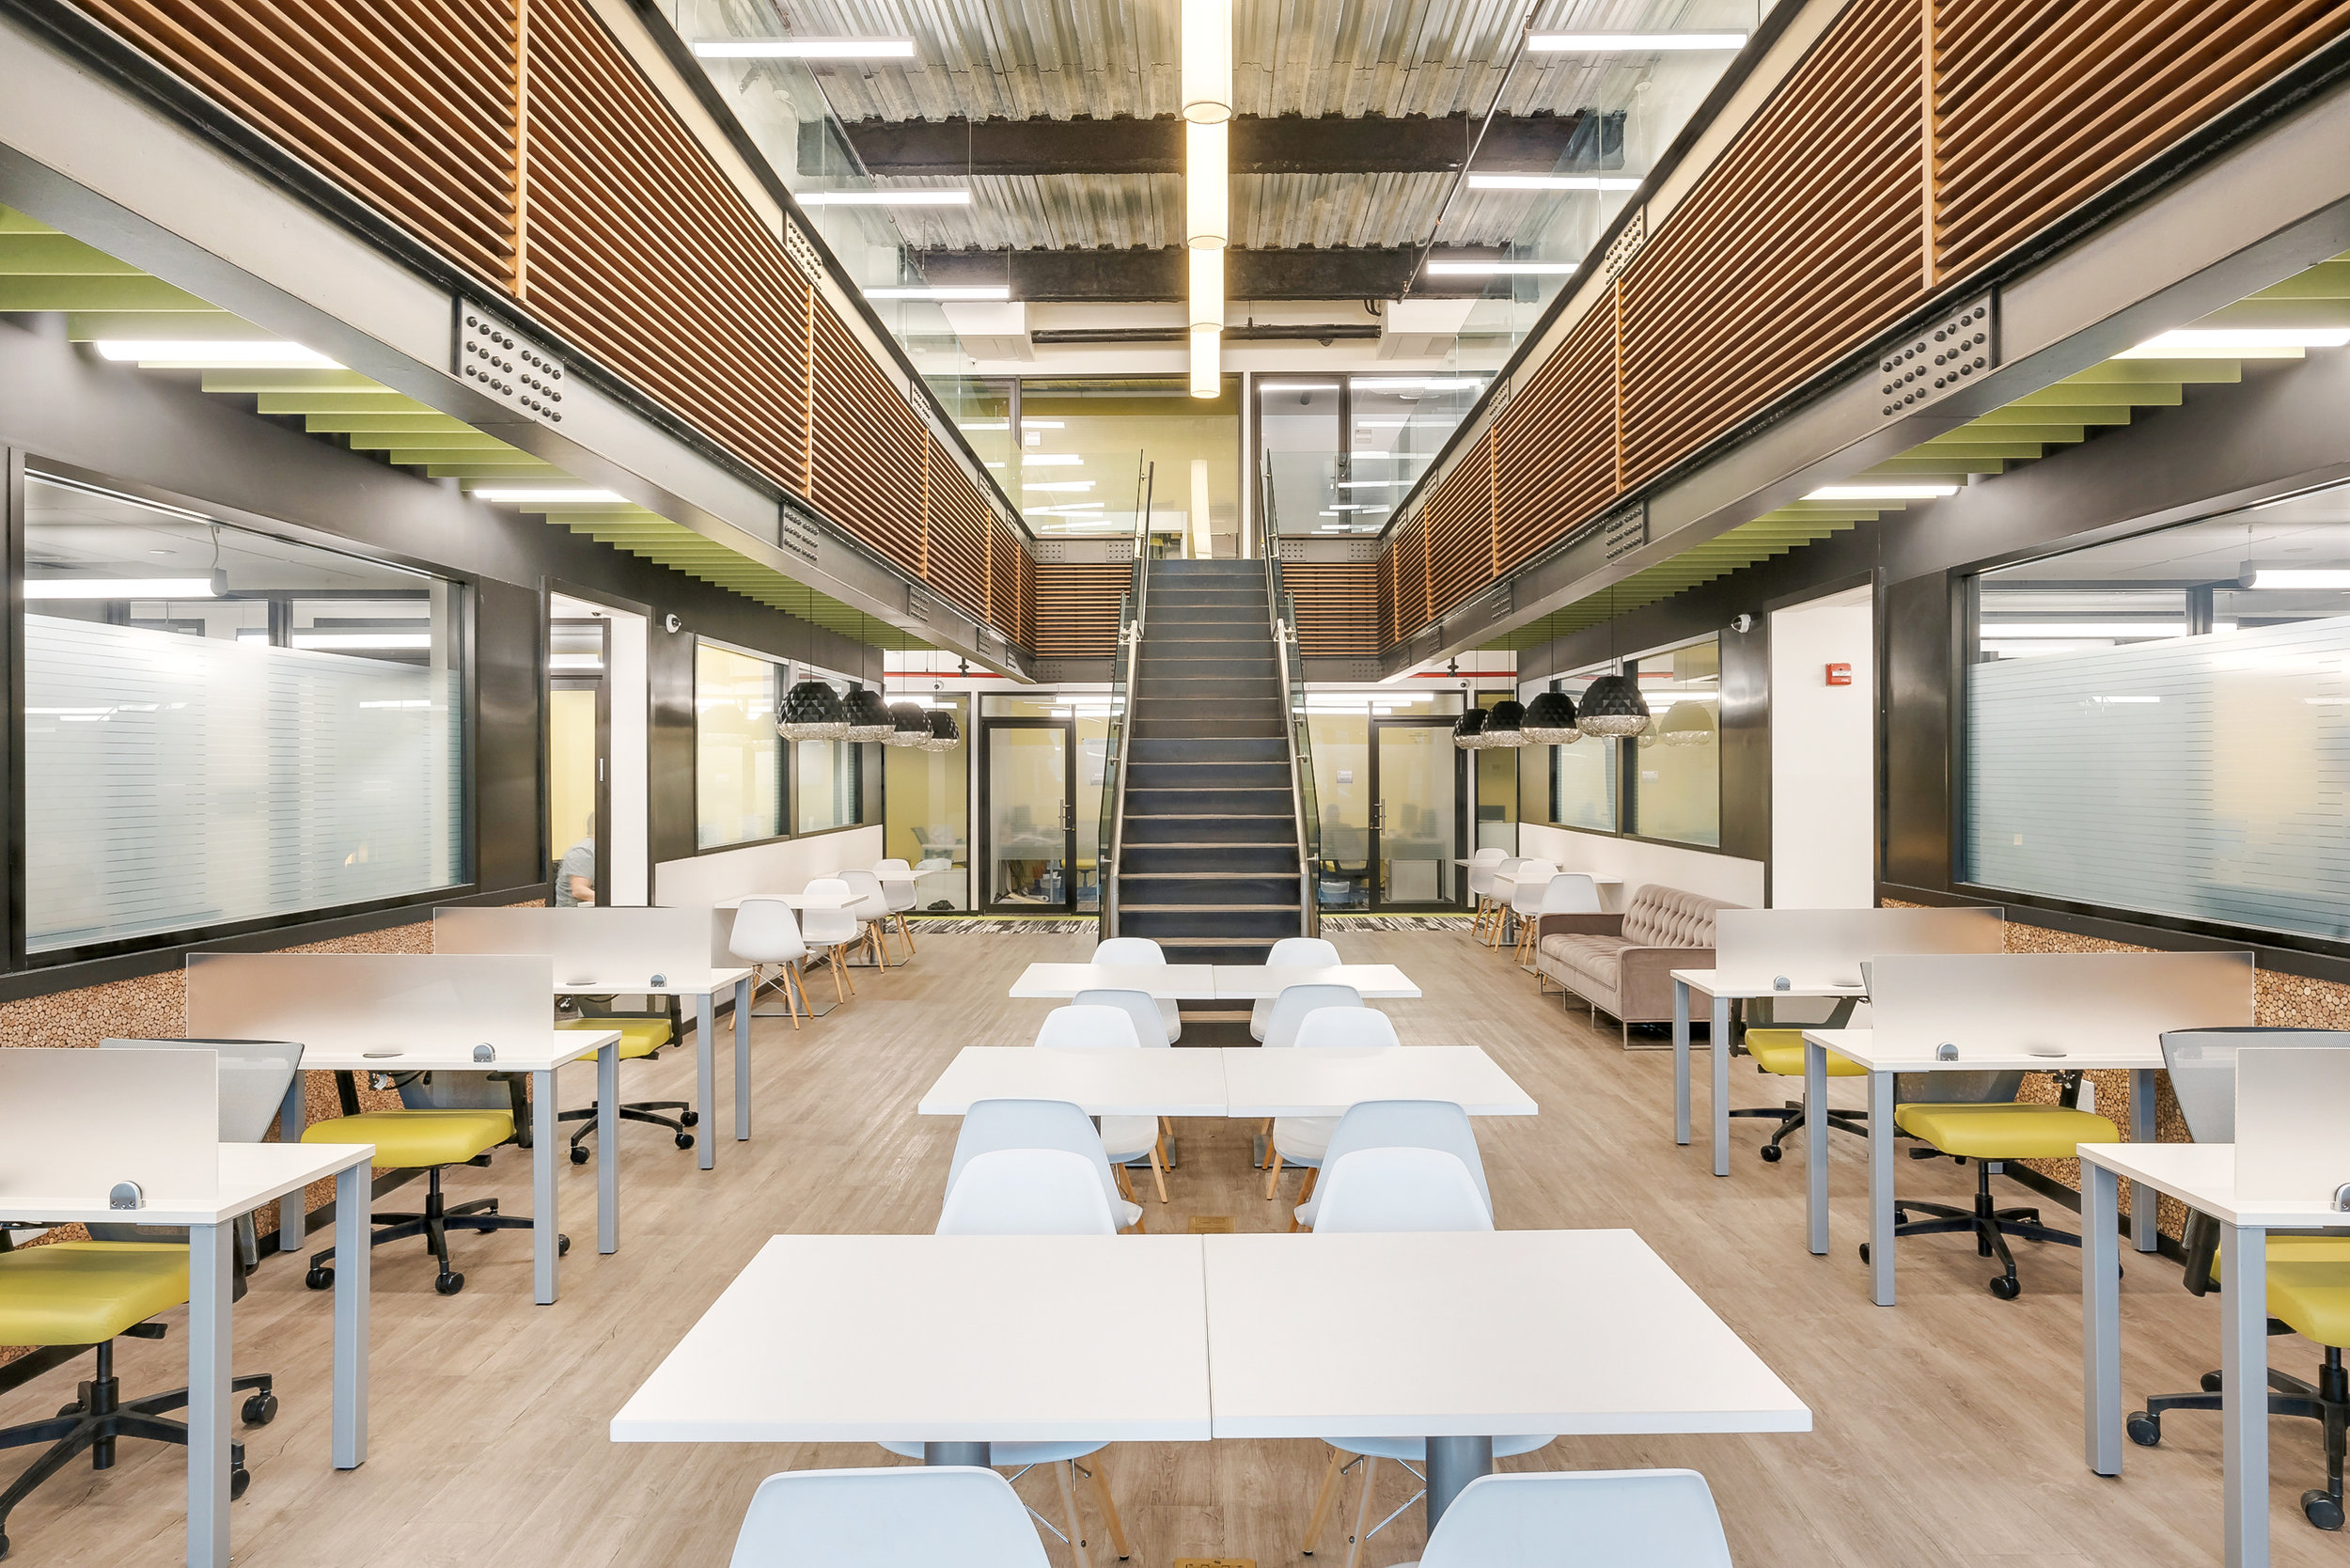 Dedicated Desks - Access to all the amenities 24/7, in a collaborative, open atmosphere.